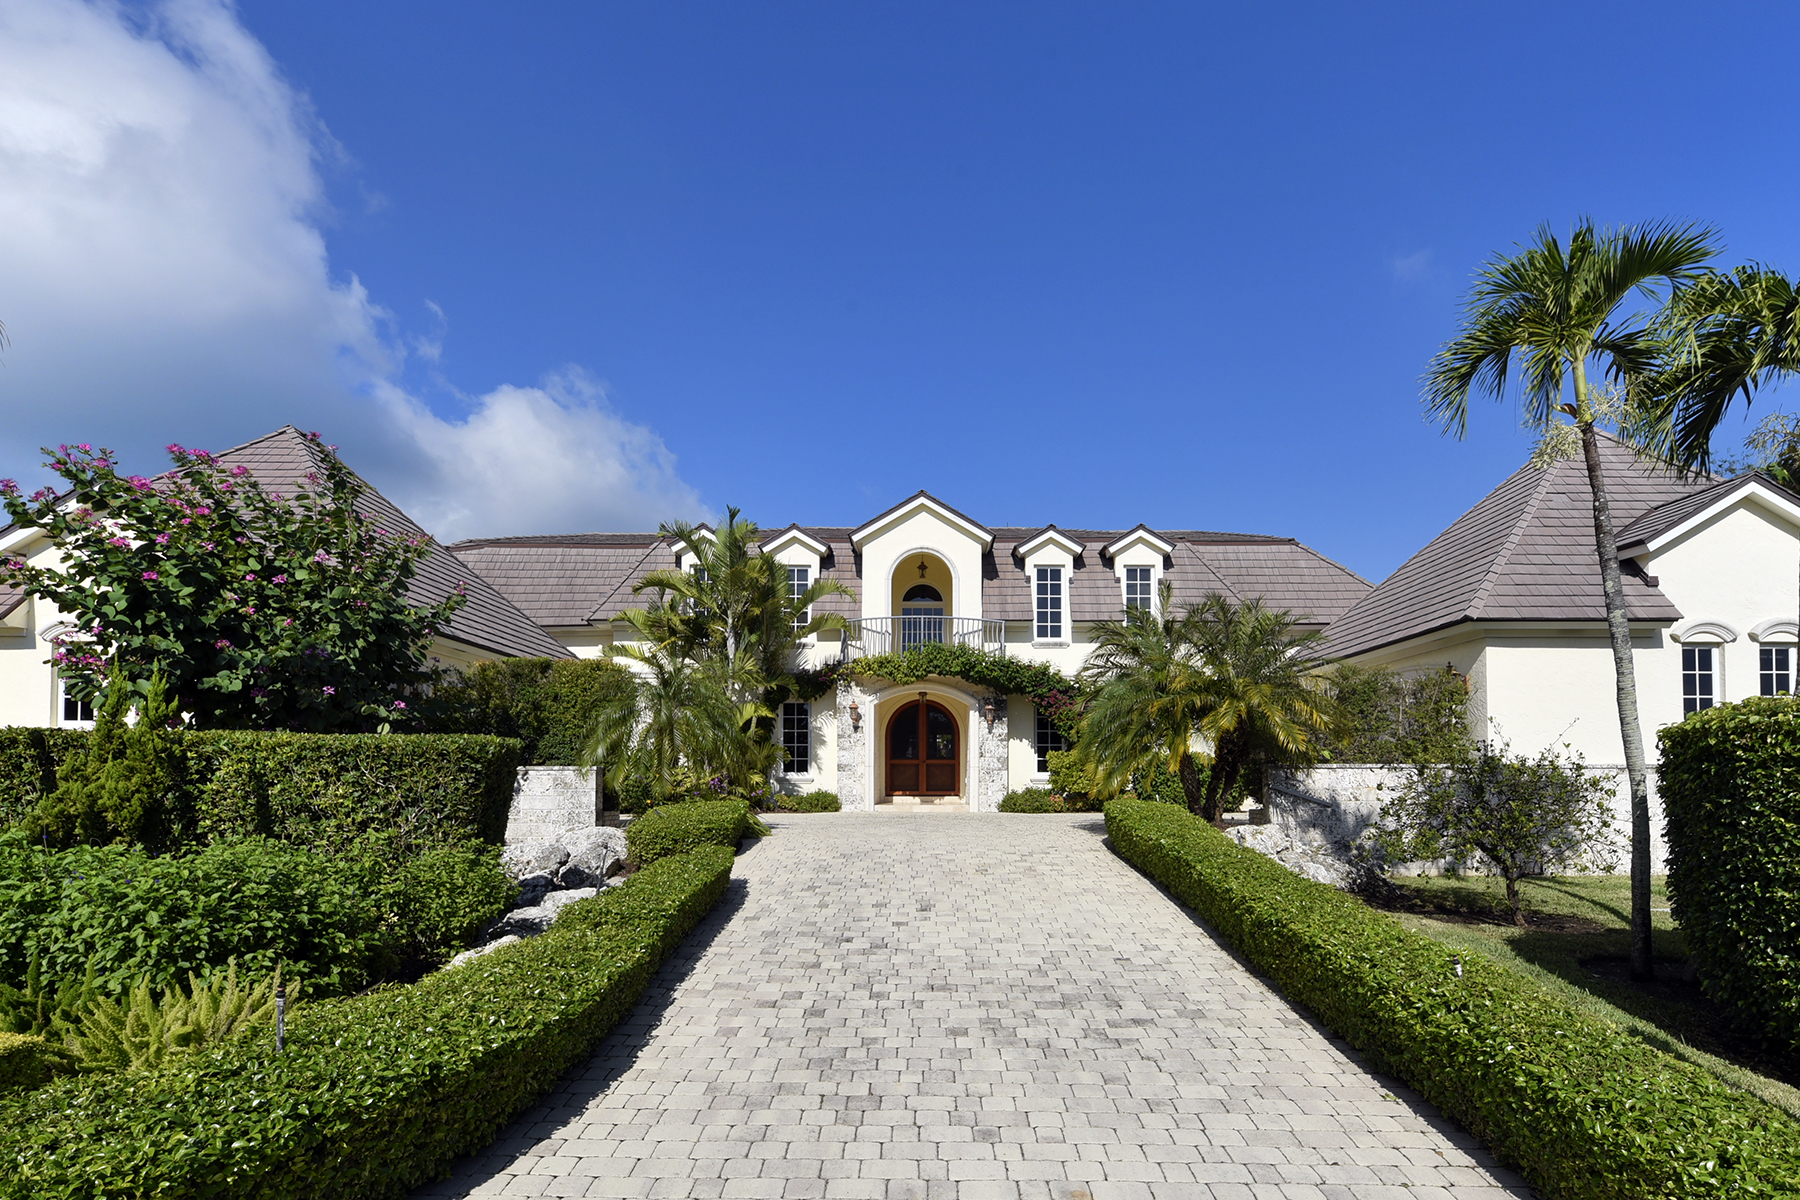 Casa Unifamiliar por un Venta en Expansive Waterfront Home at Ocean Reef 25 Bay Ridge Road Ocean Reef Community, Key Largo, Florida, 33037 Estados Unidos